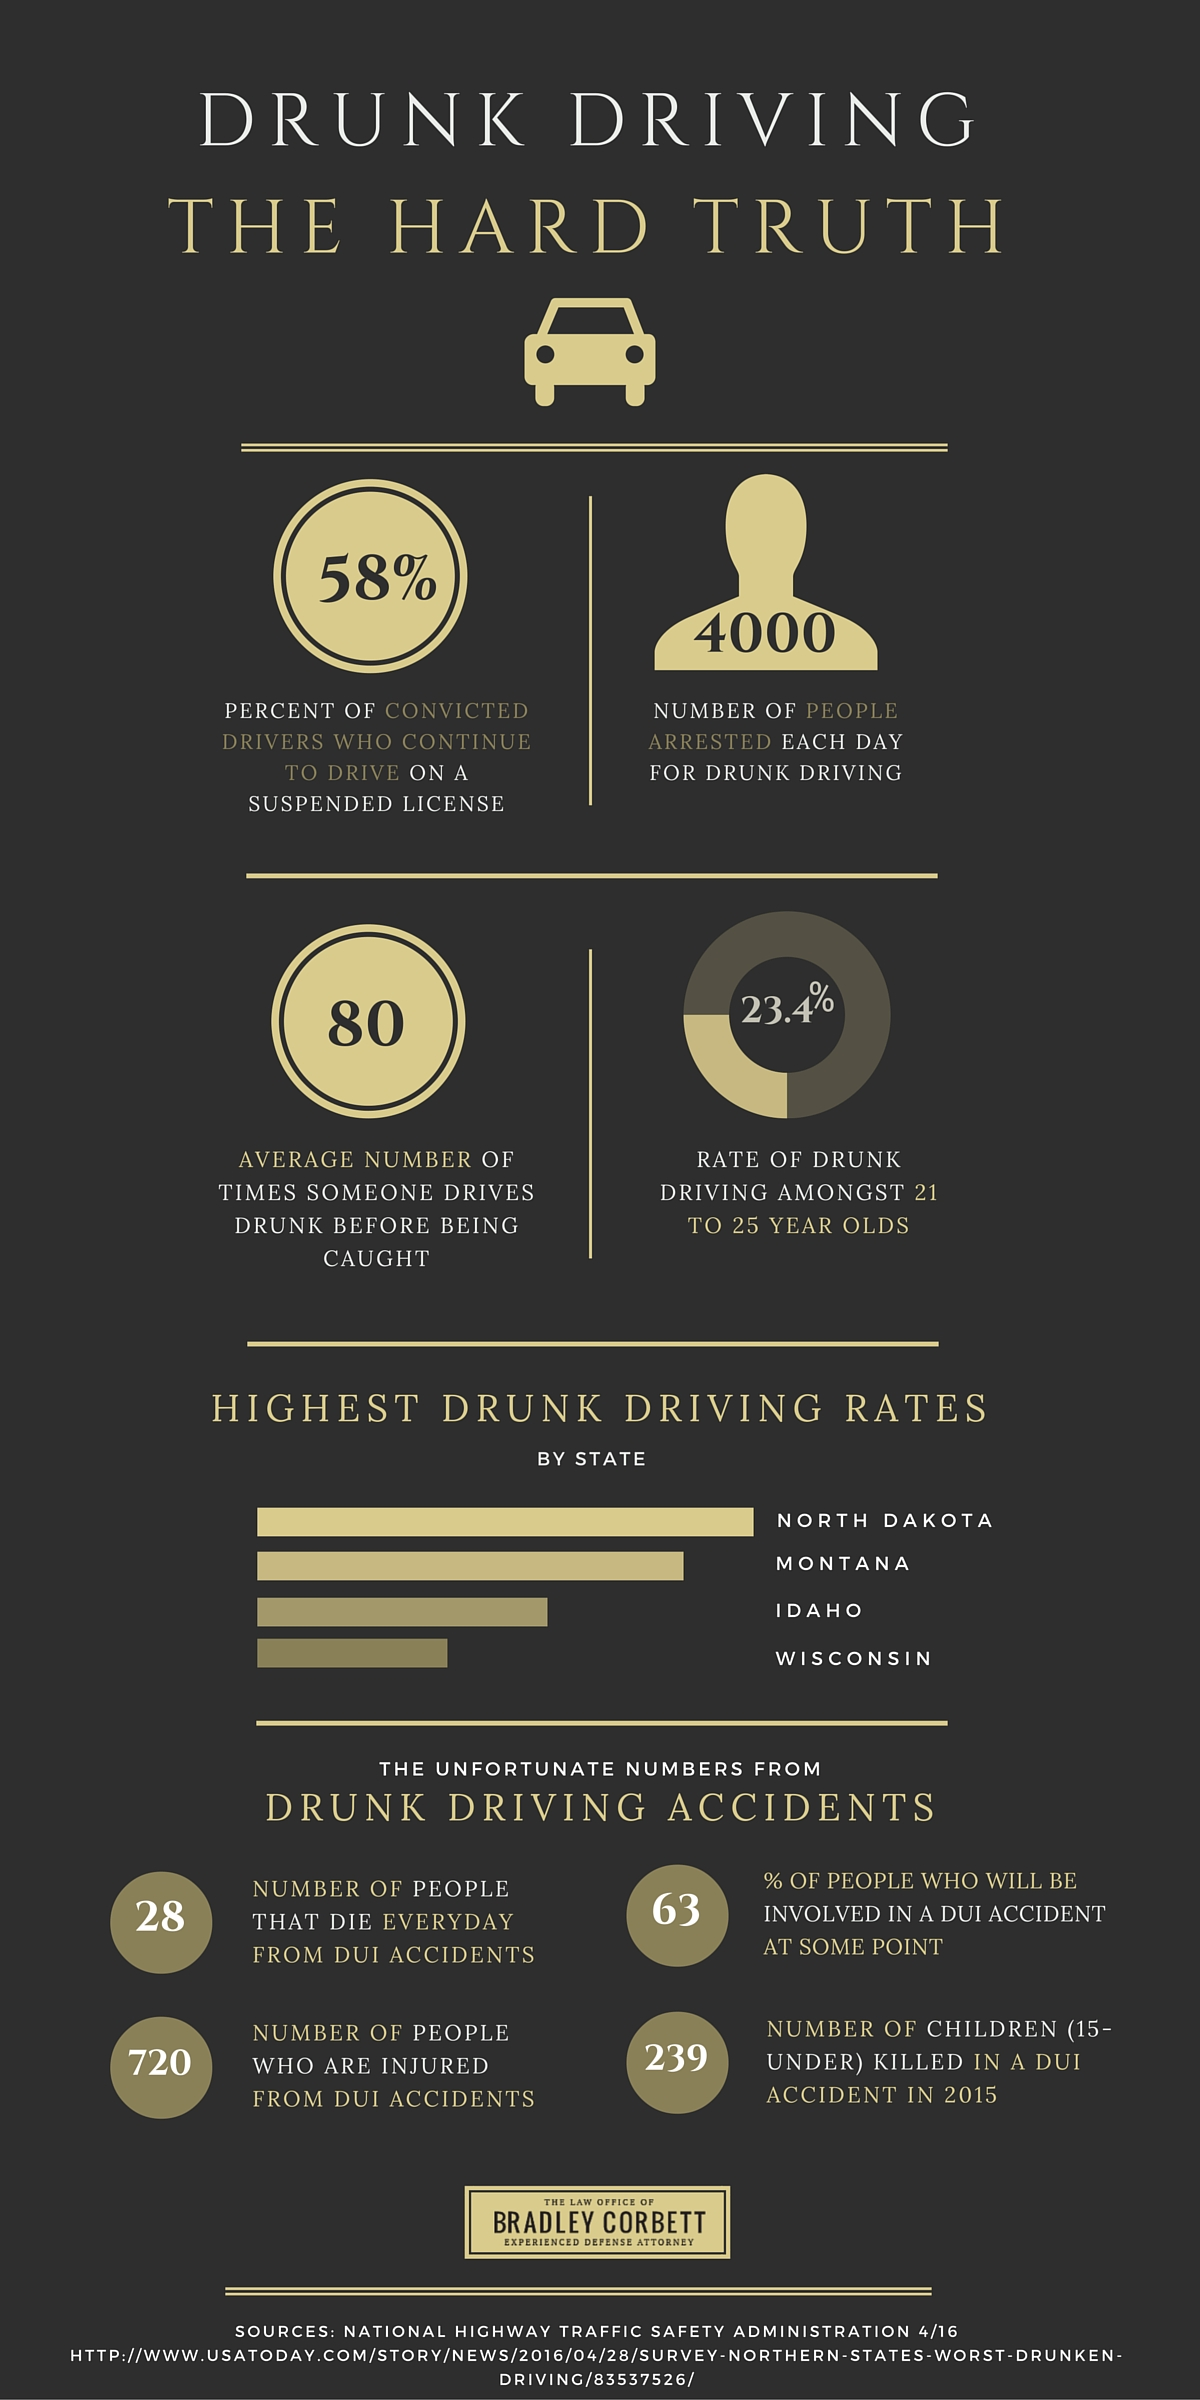 Drunk Driving Facts Infographic Bradley Corbett Law